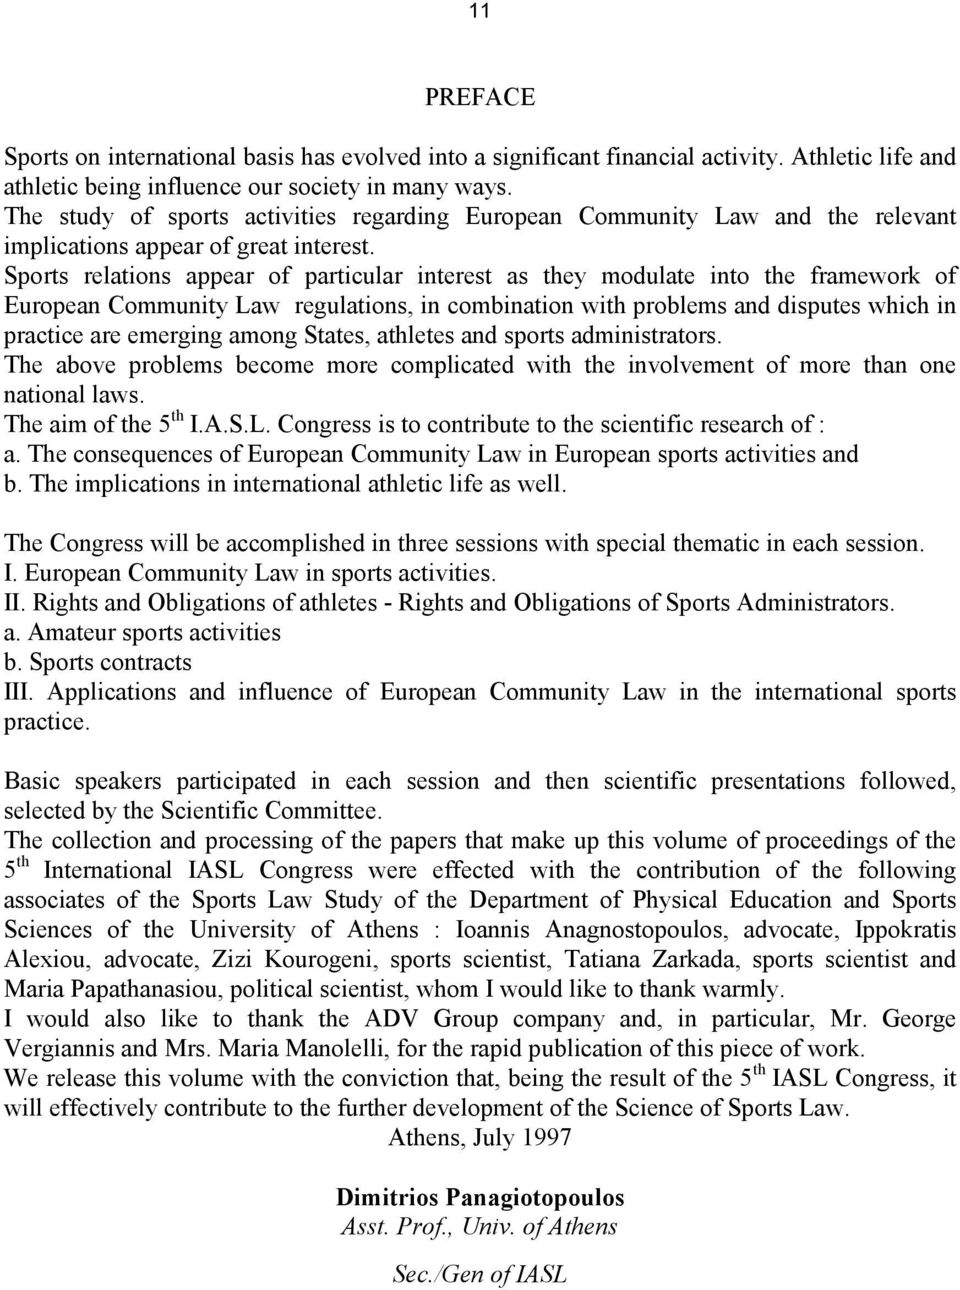 Sports relations appear of particular interest as they modulate into the framework of European Community Law regulations, in combination with problems and disputes which in practice are emerging